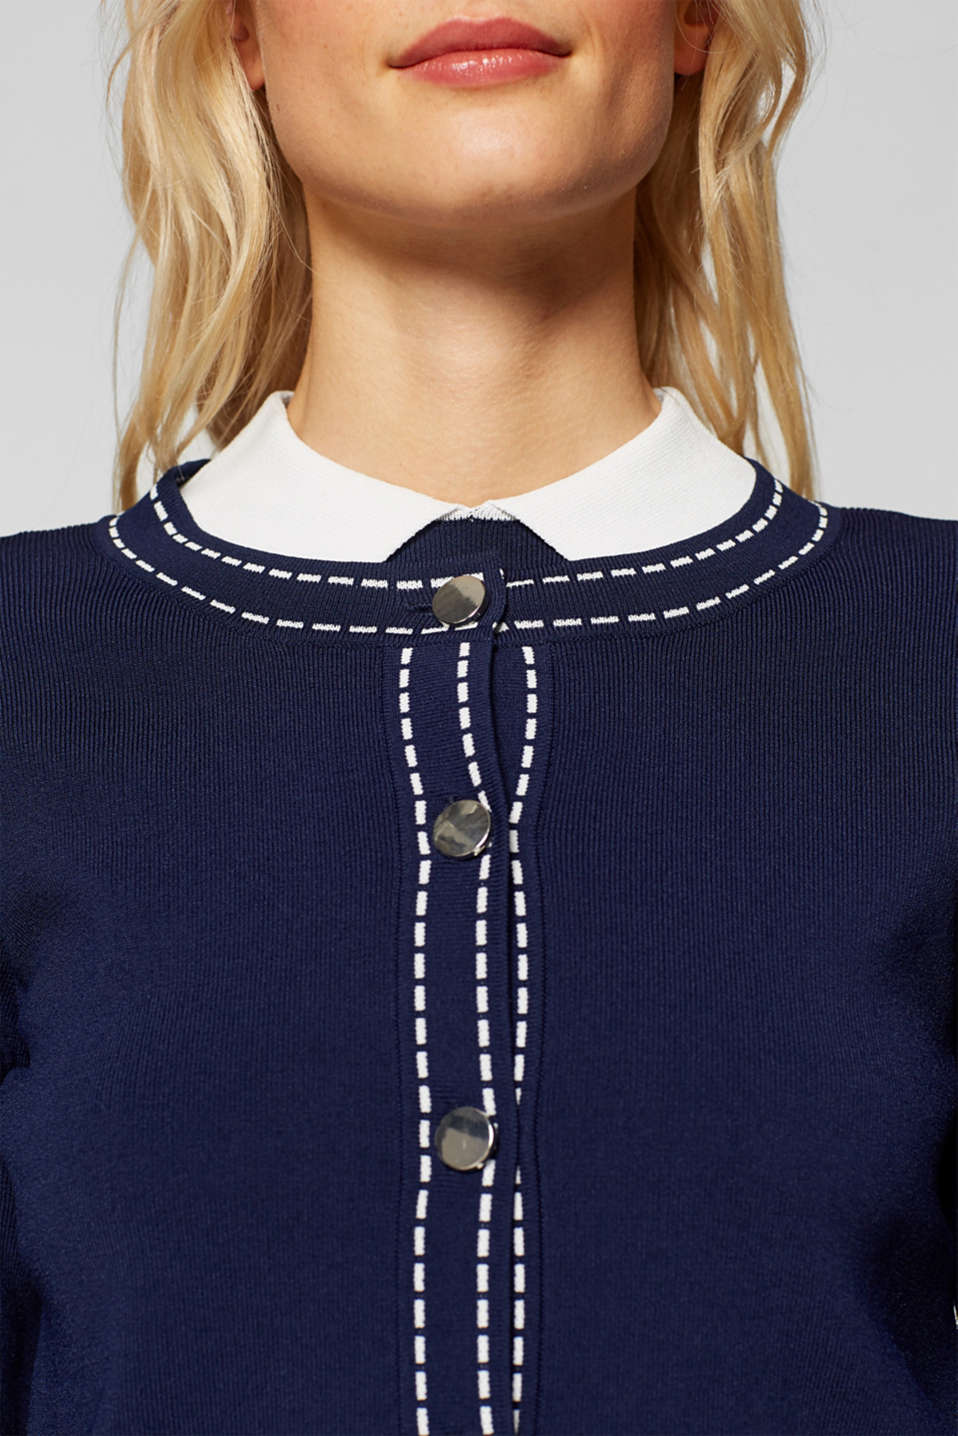 Cardigan with contrasting details, NAVY, detail image number 6